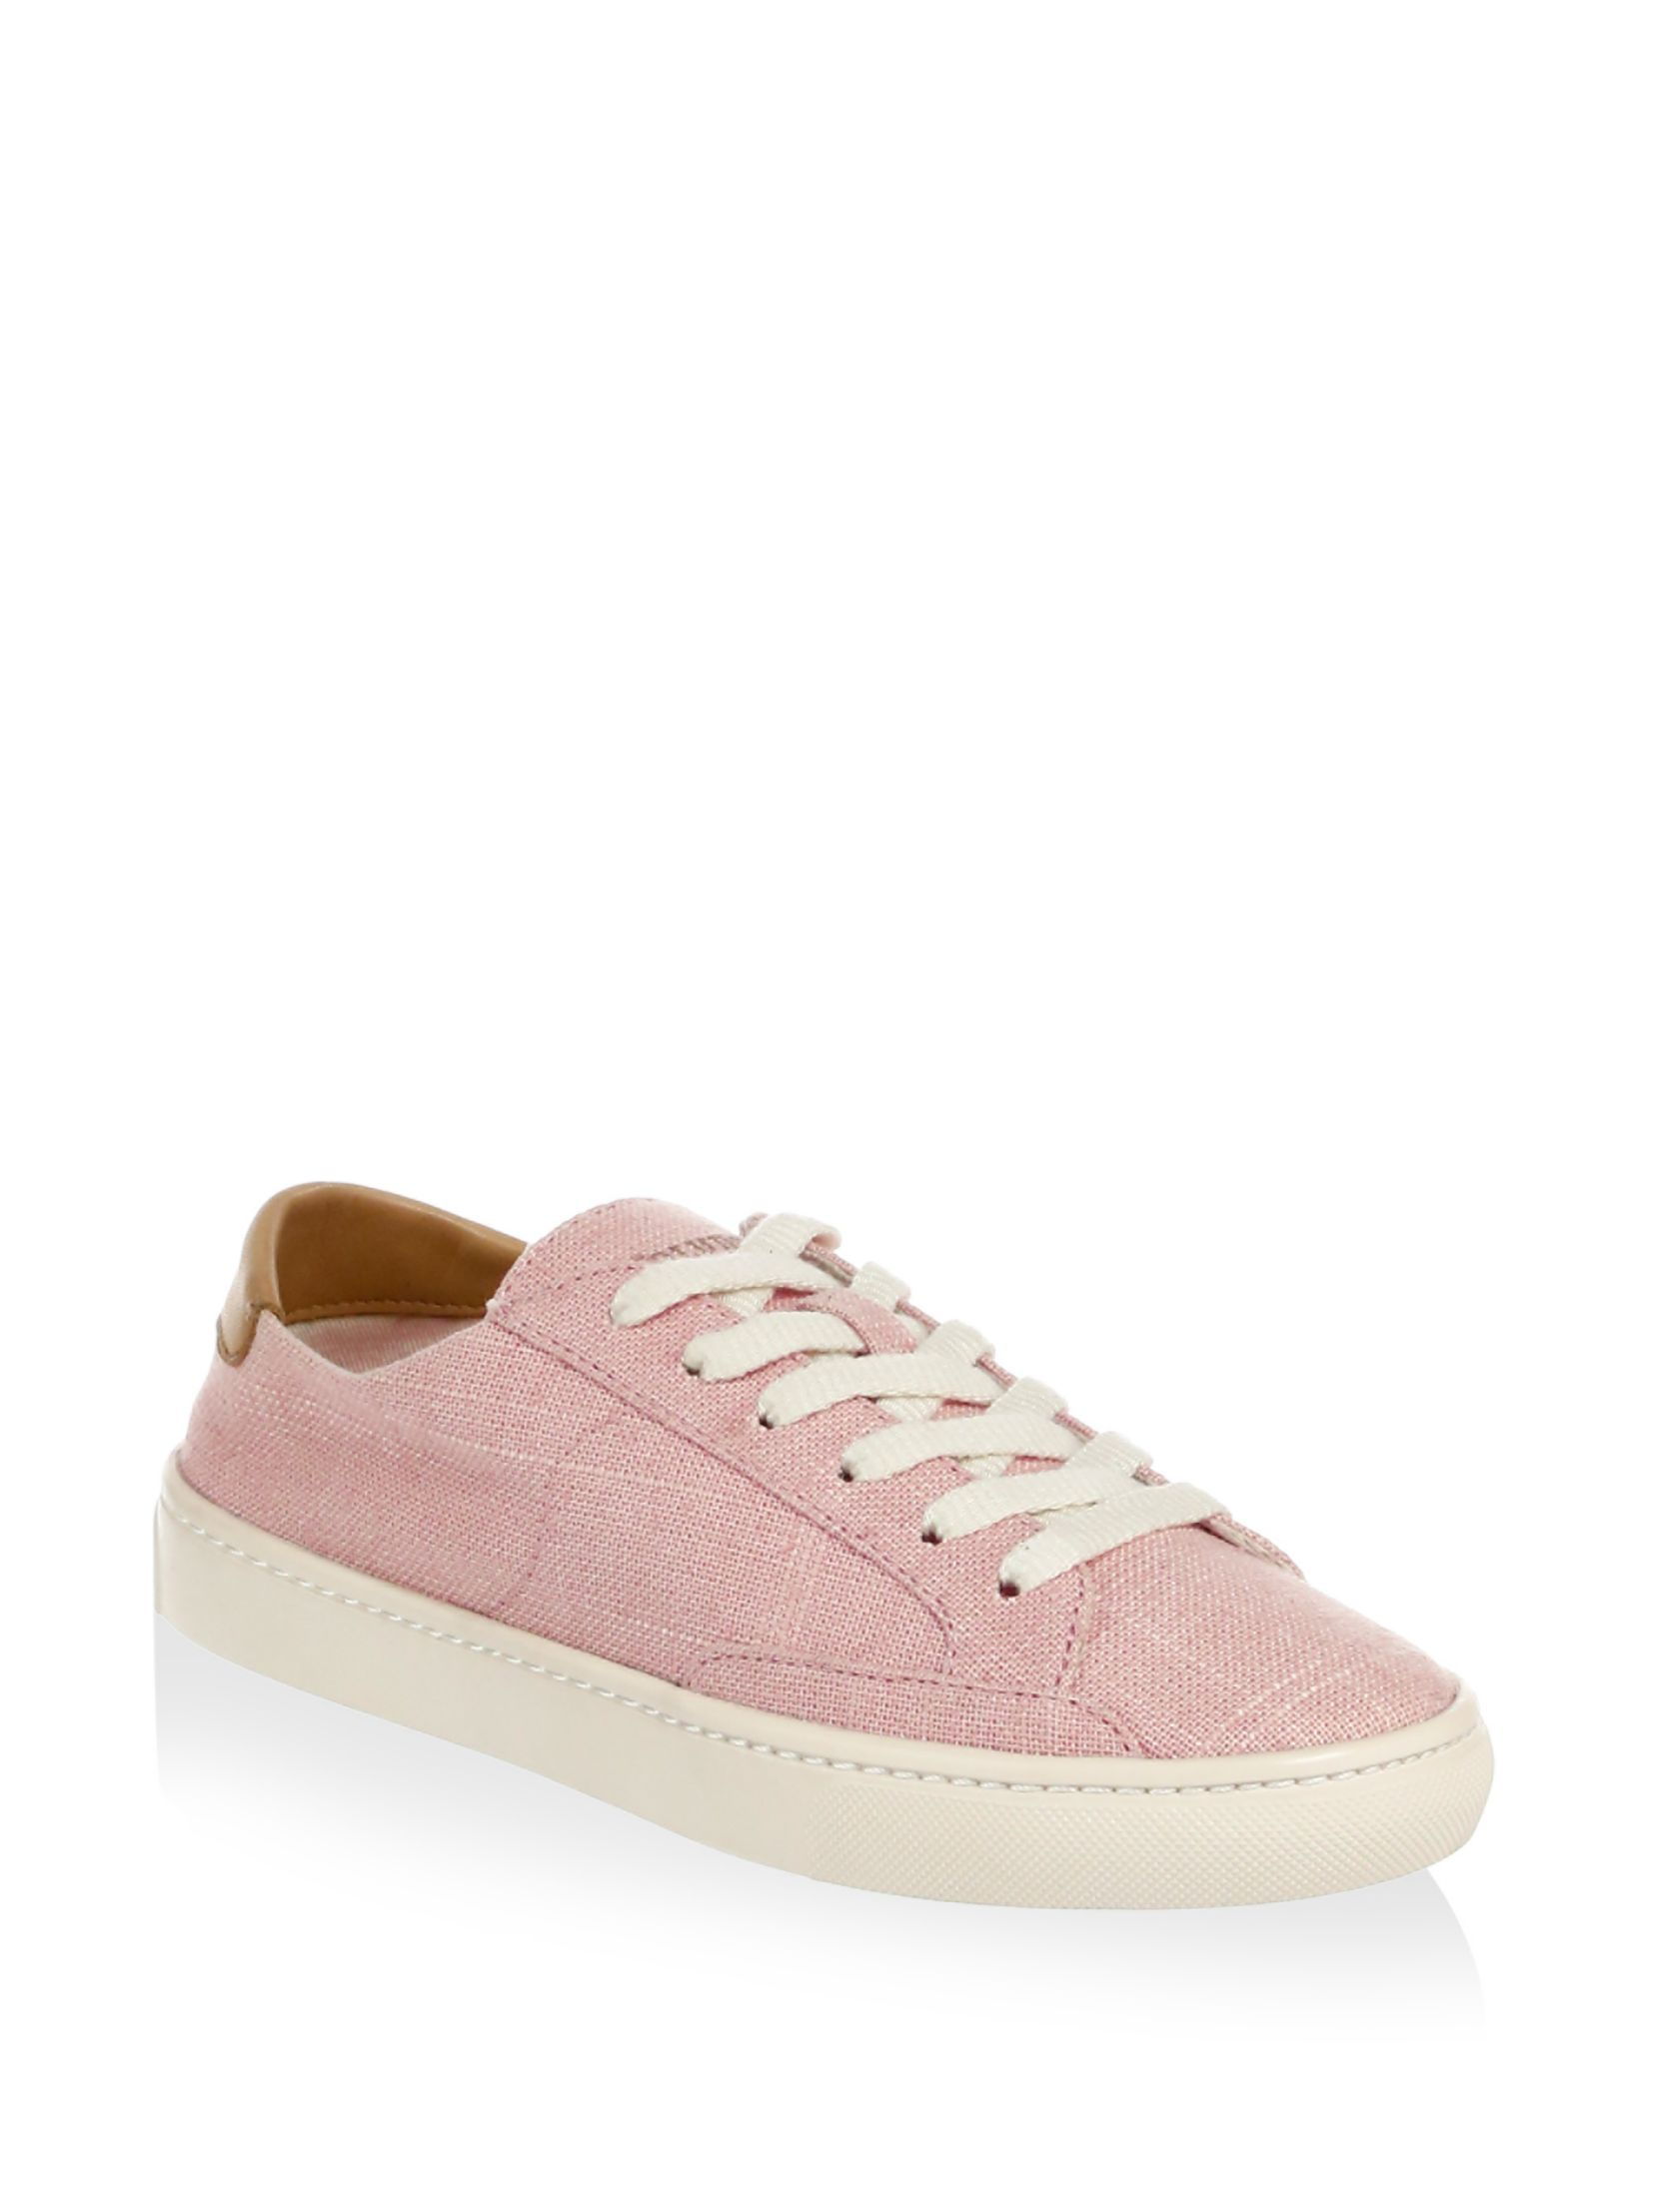 FOOTWEAR - Low-tops & sneakers Soludos Buy Cheap Clearance Store Outlet With Mastercard Vesp1H